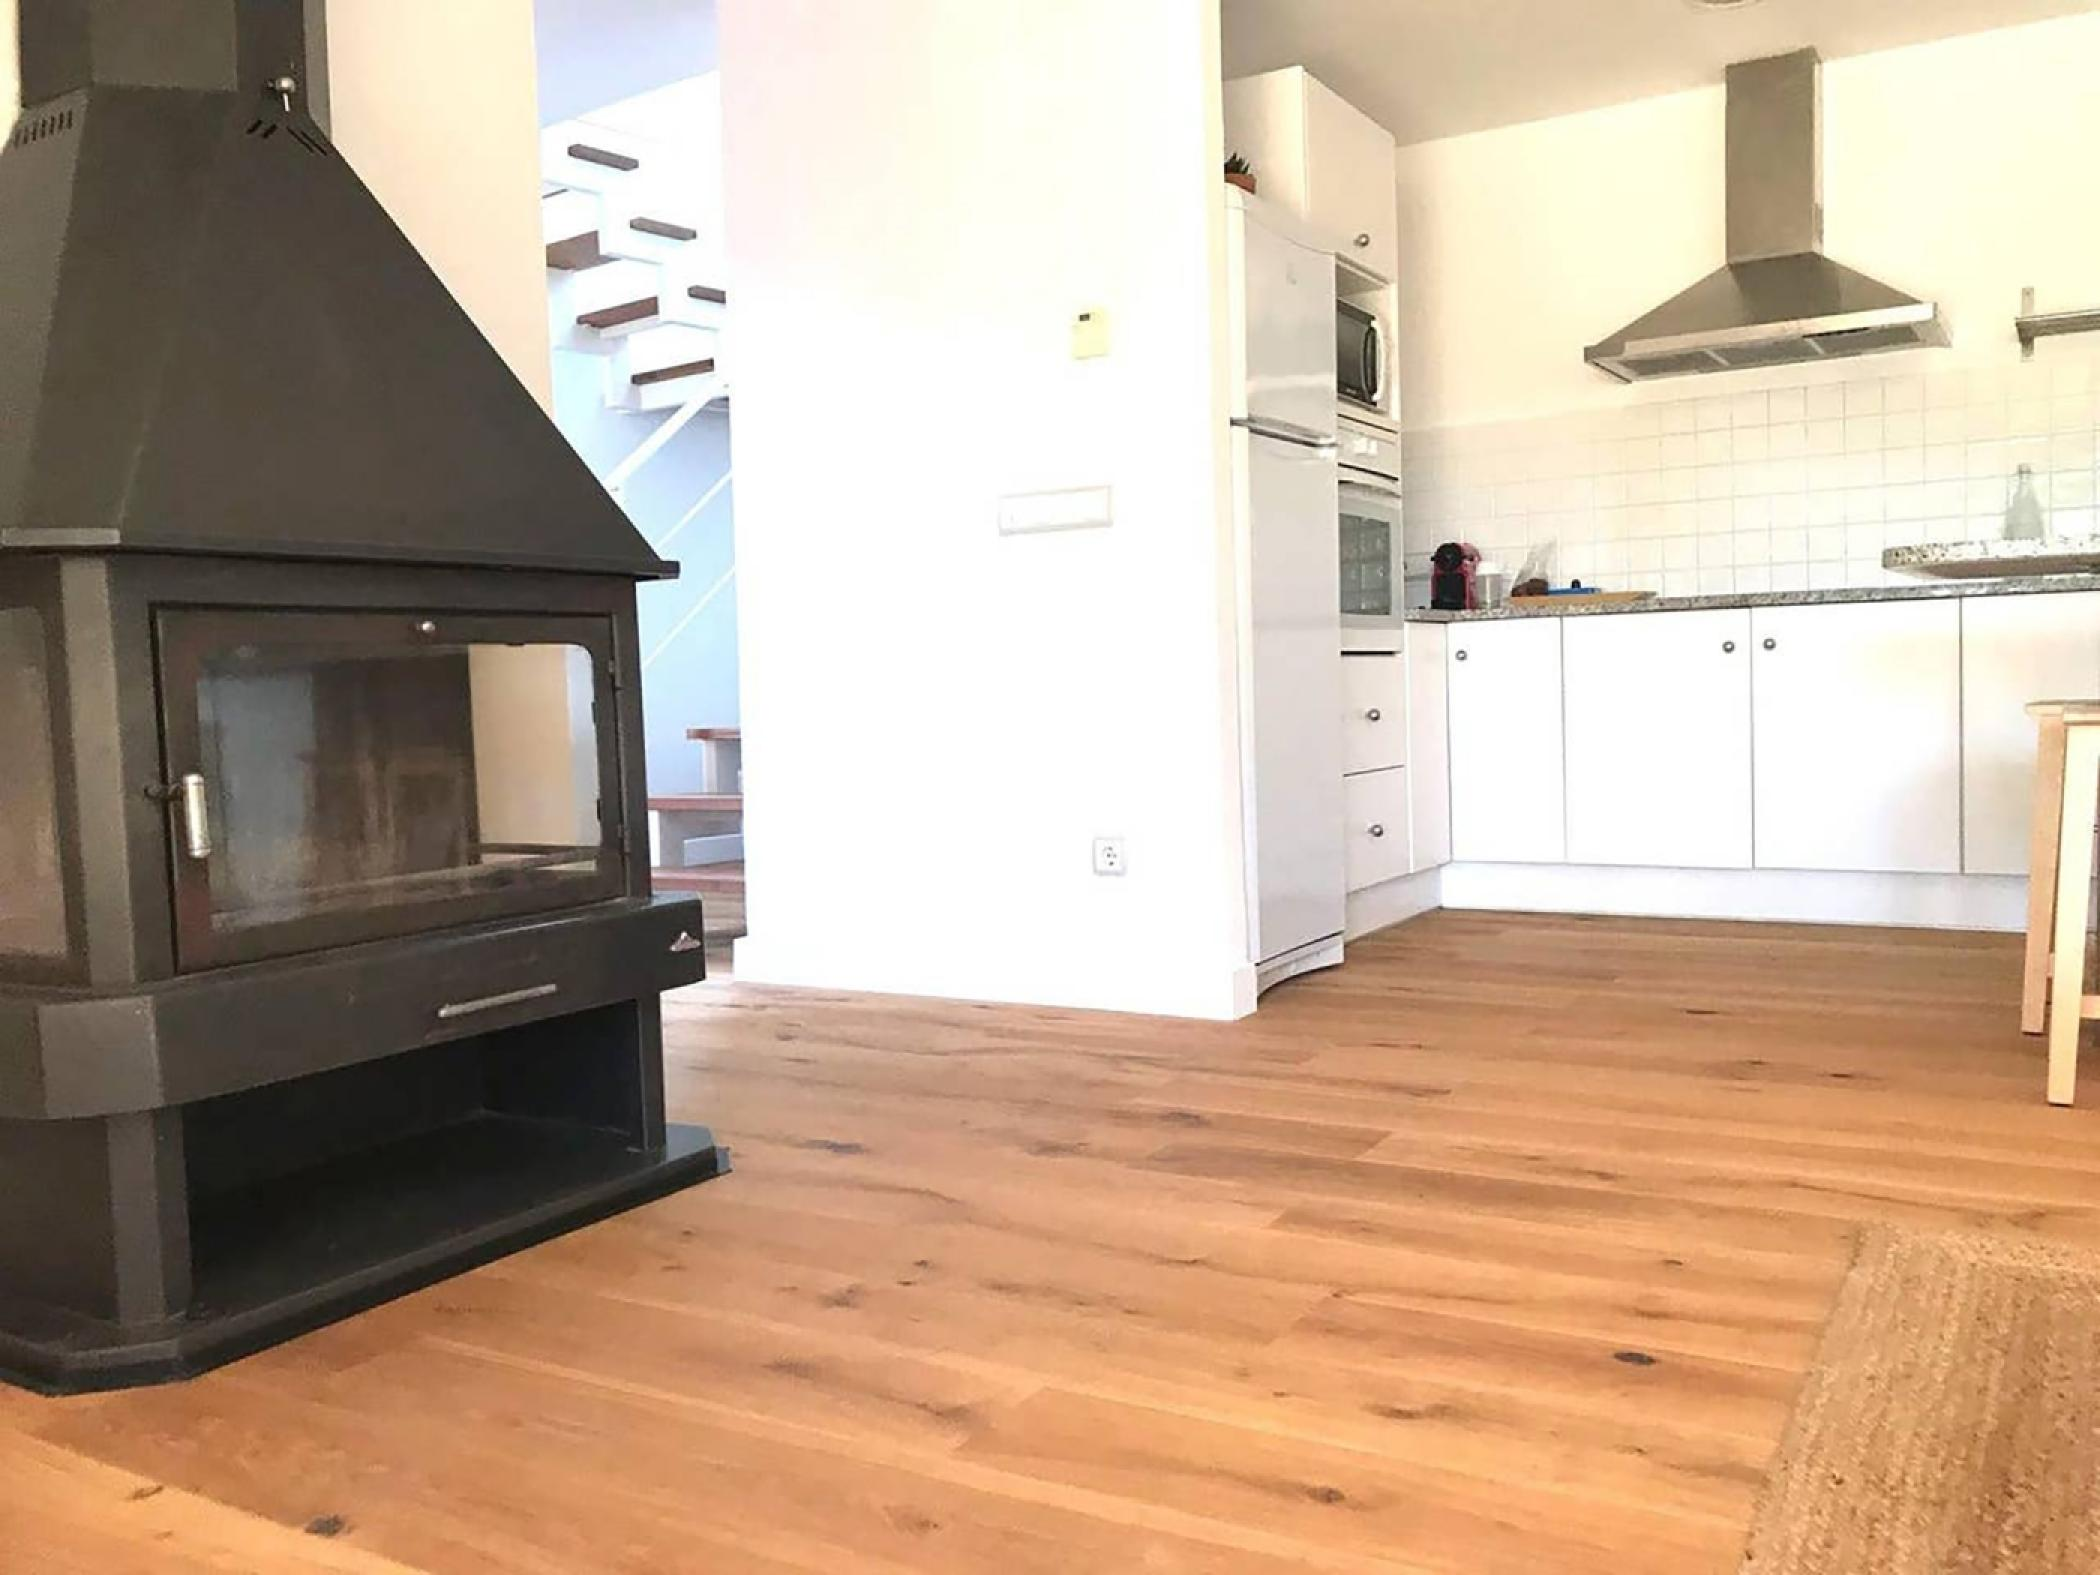 Fireplace and kitchen - Rent apartment in Sant Jordi Desvalls, Diana, Girona